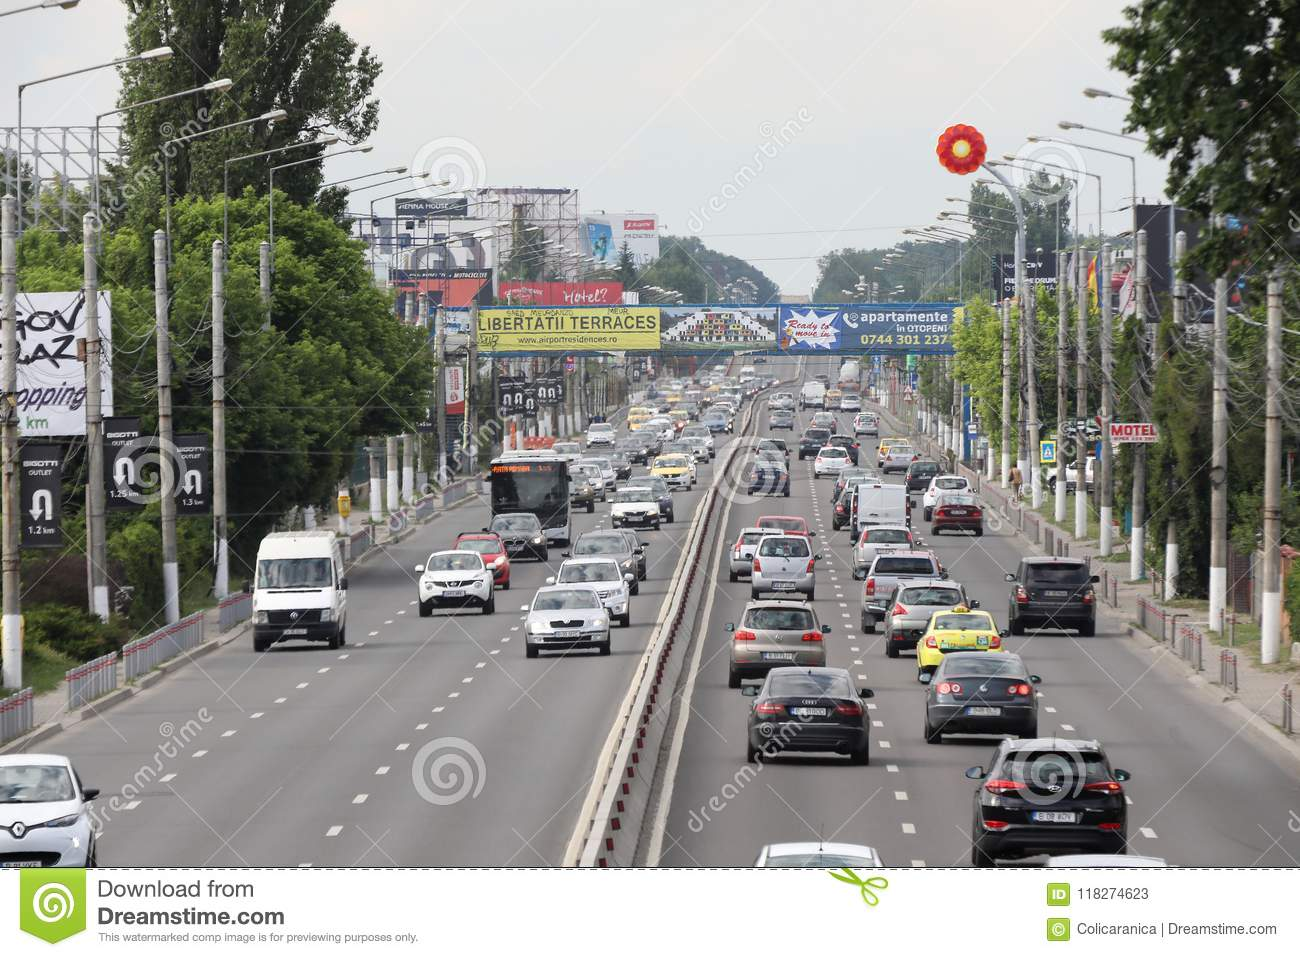 Bucharest national road seen from above